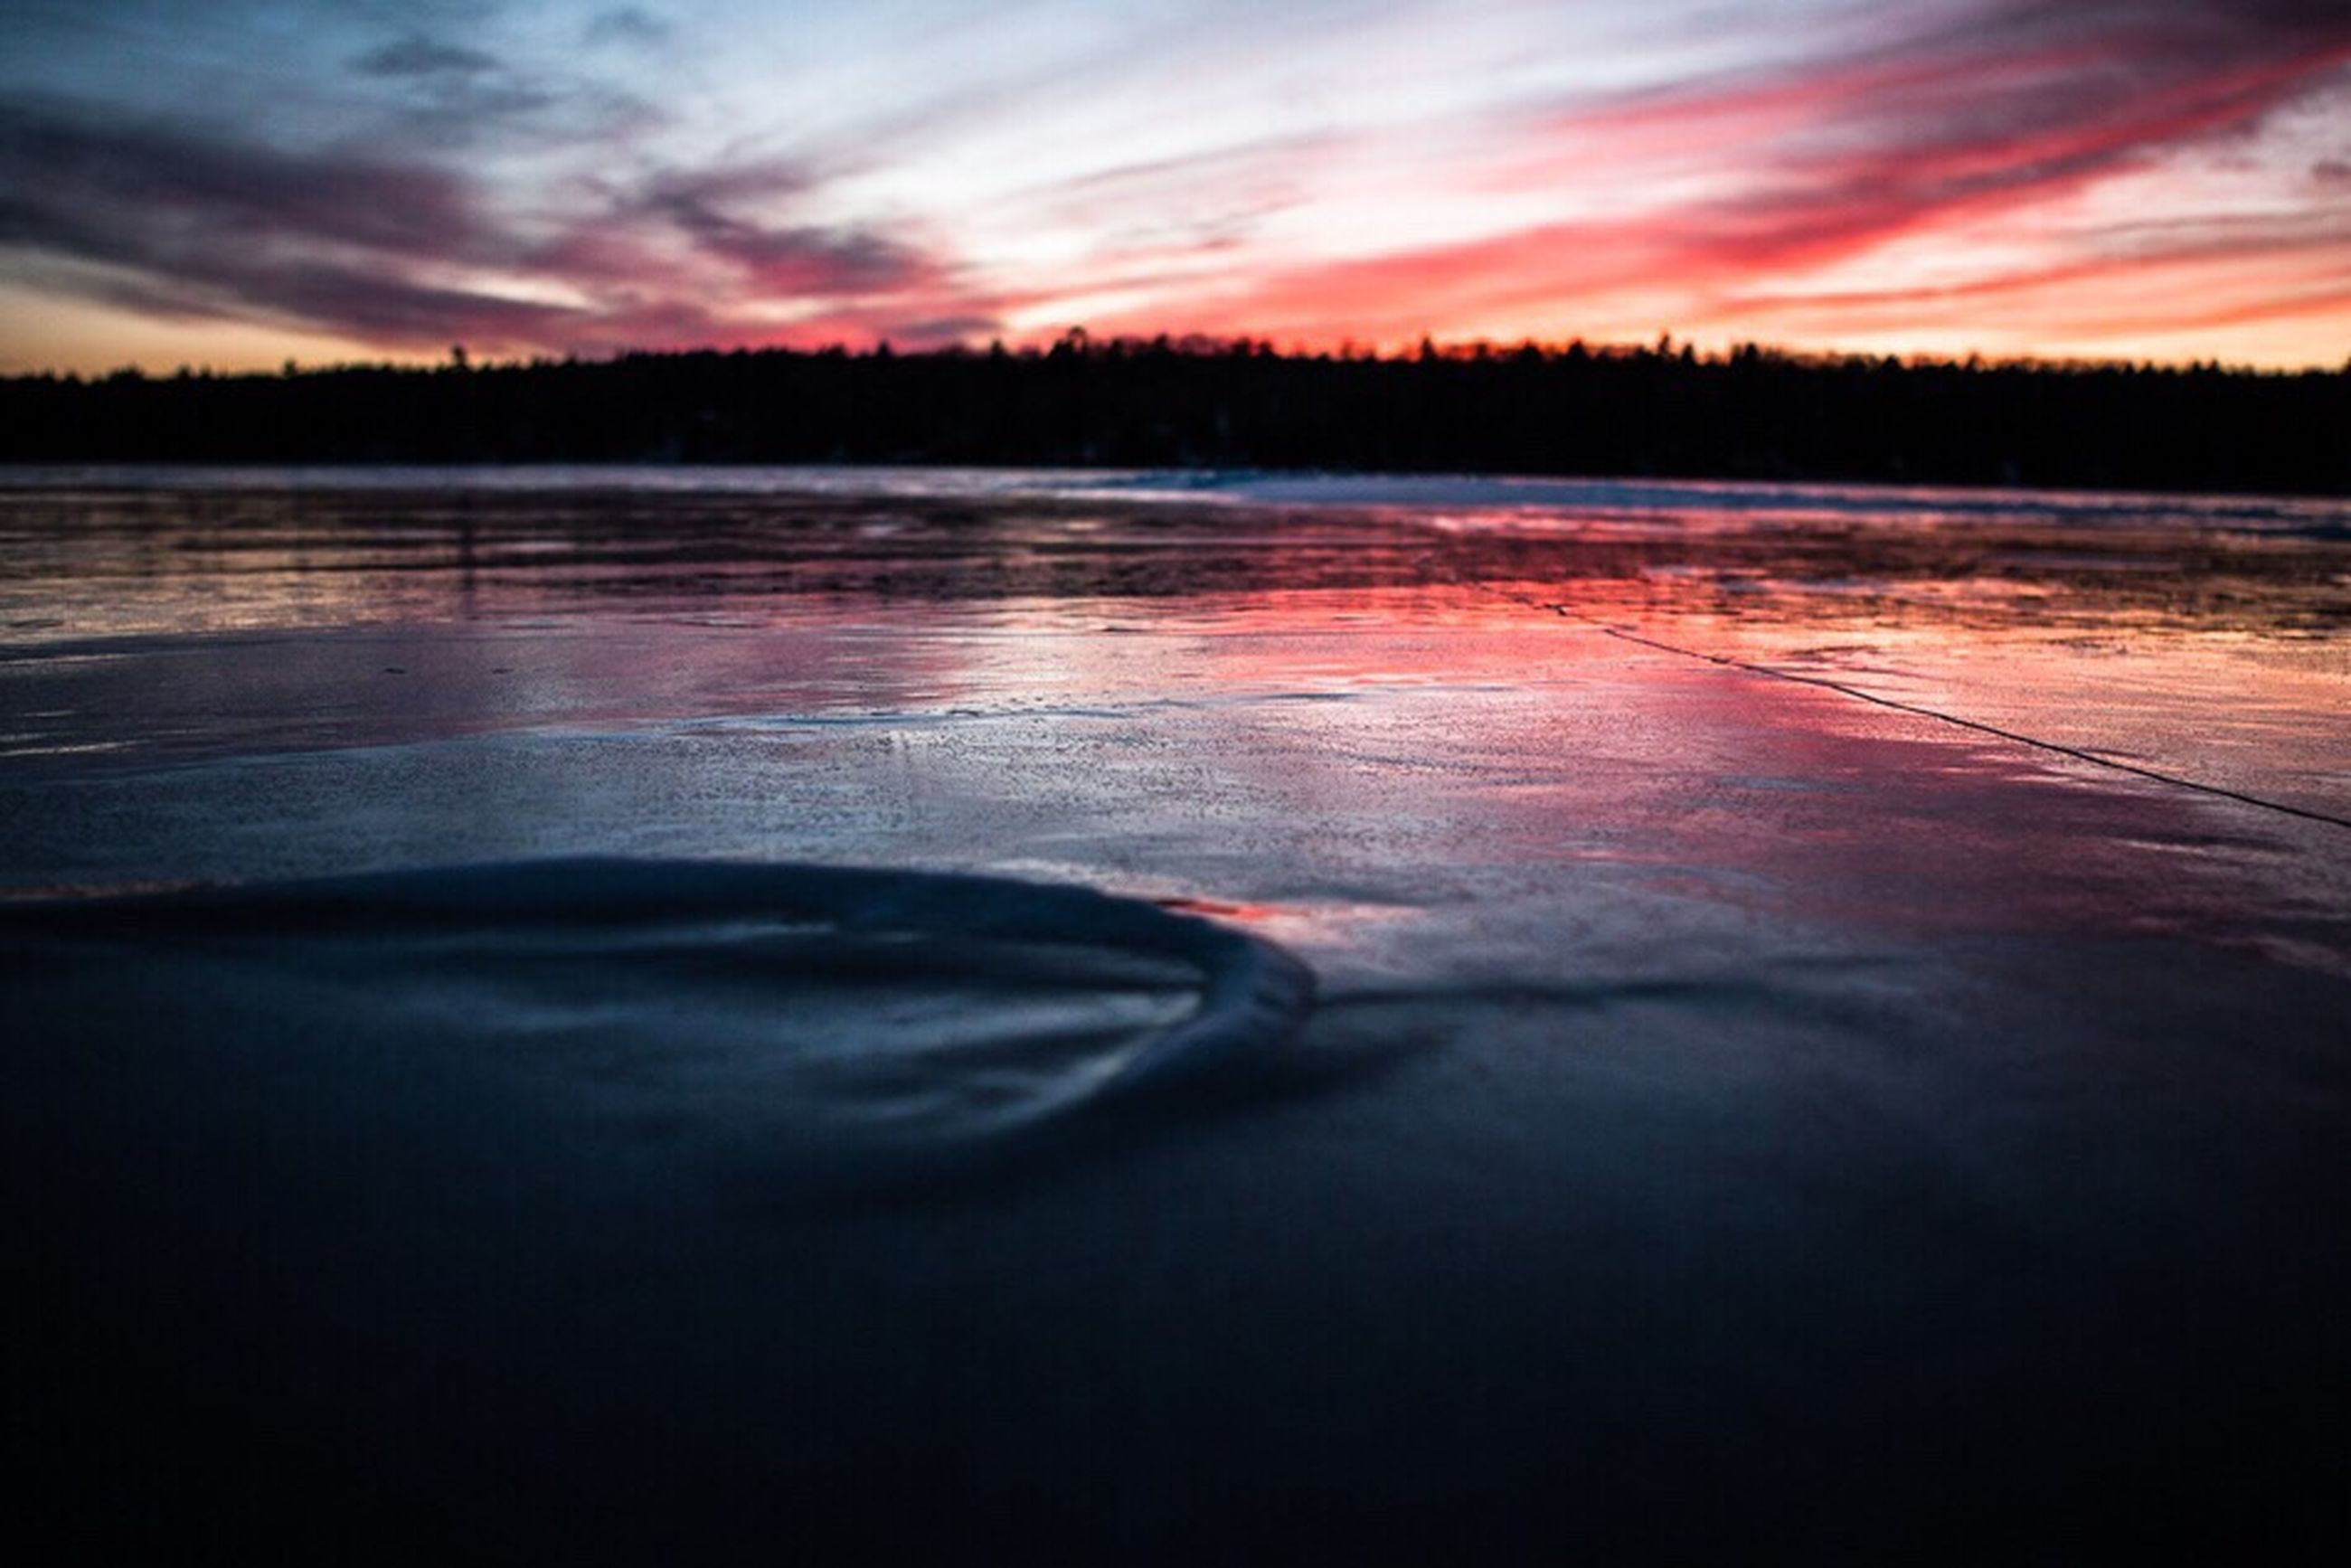 reflection, water, nature, sky, sunset, cloud - sky, outdoors, beauty in nature, lake, tranquility, no people, tranquil scene, scenics, beach, day